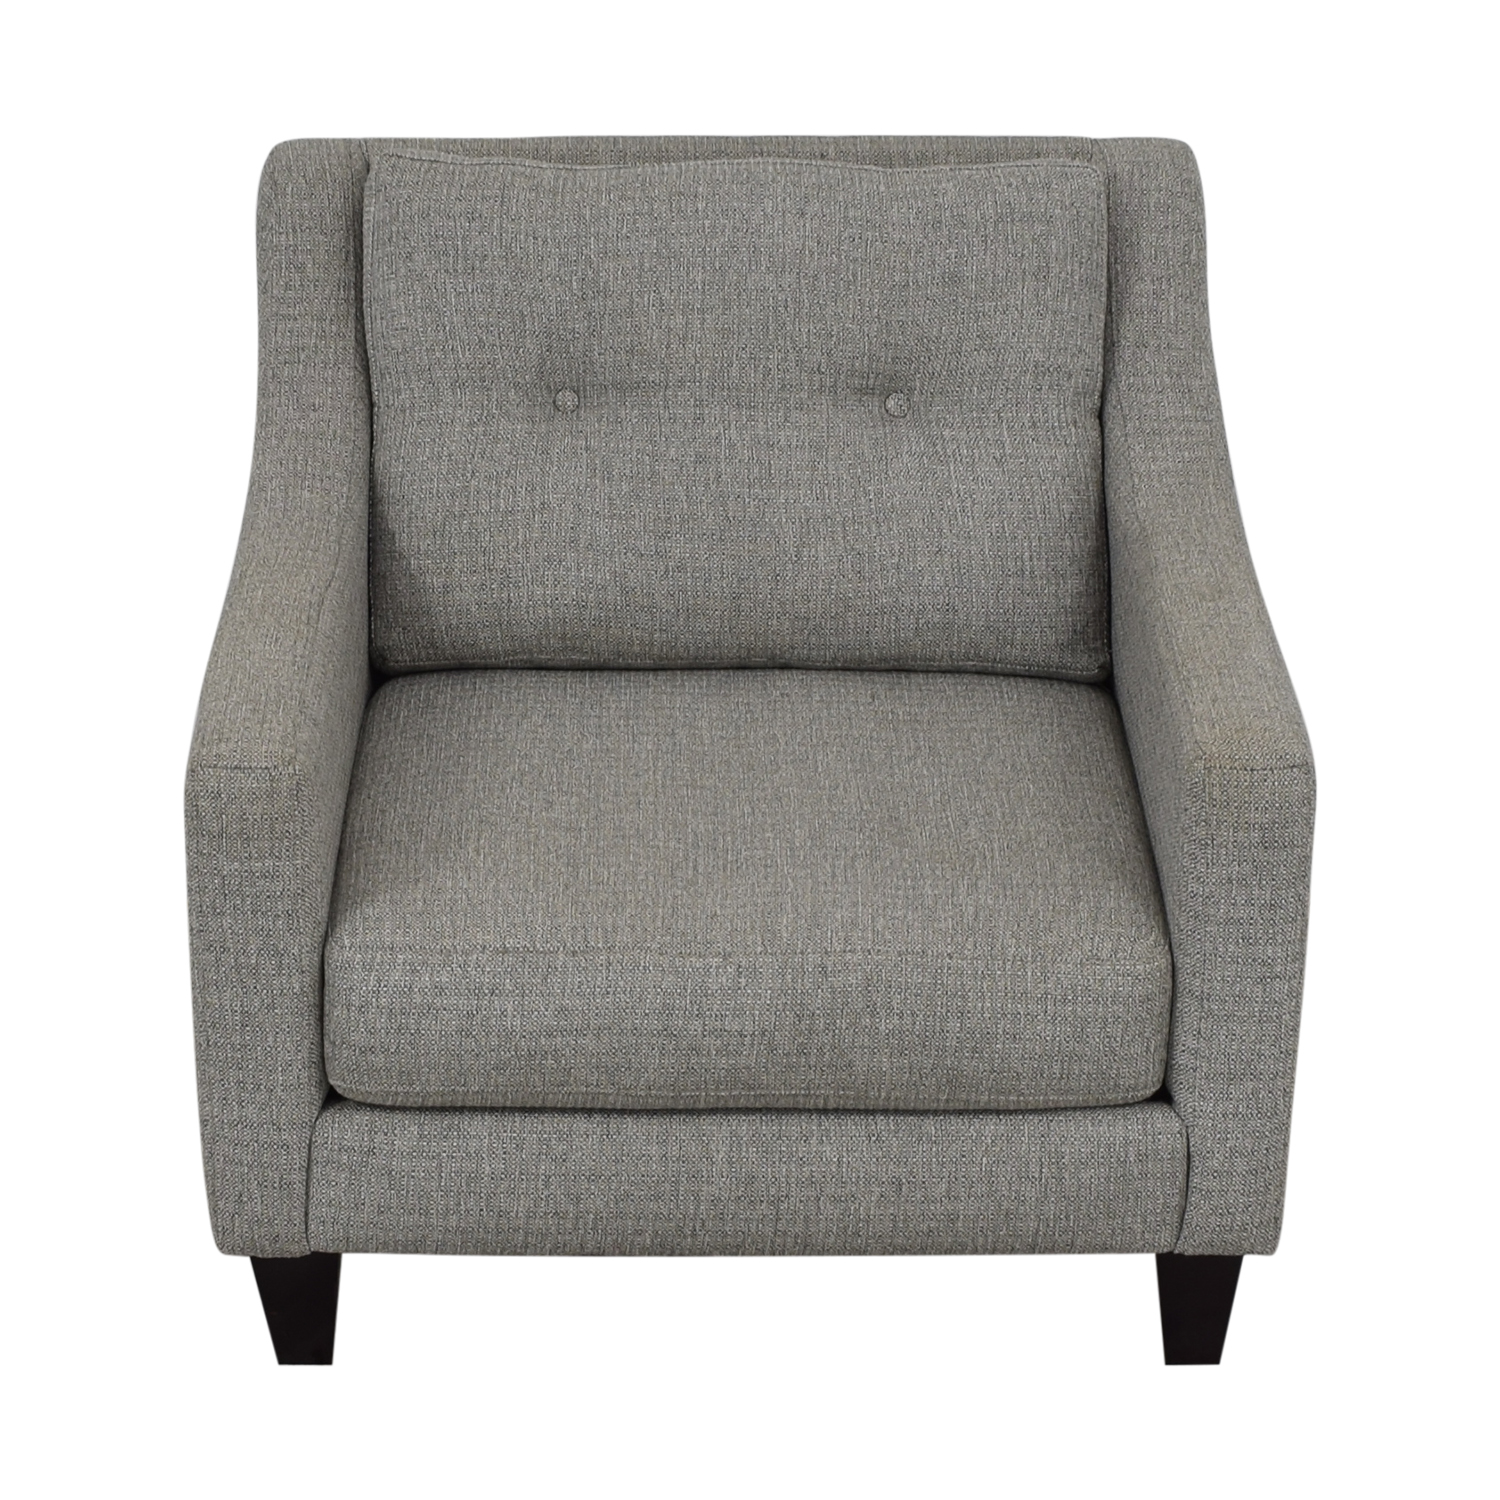 Raymour & Flanigan Raymour & Flanigan Accent Chair dimensions